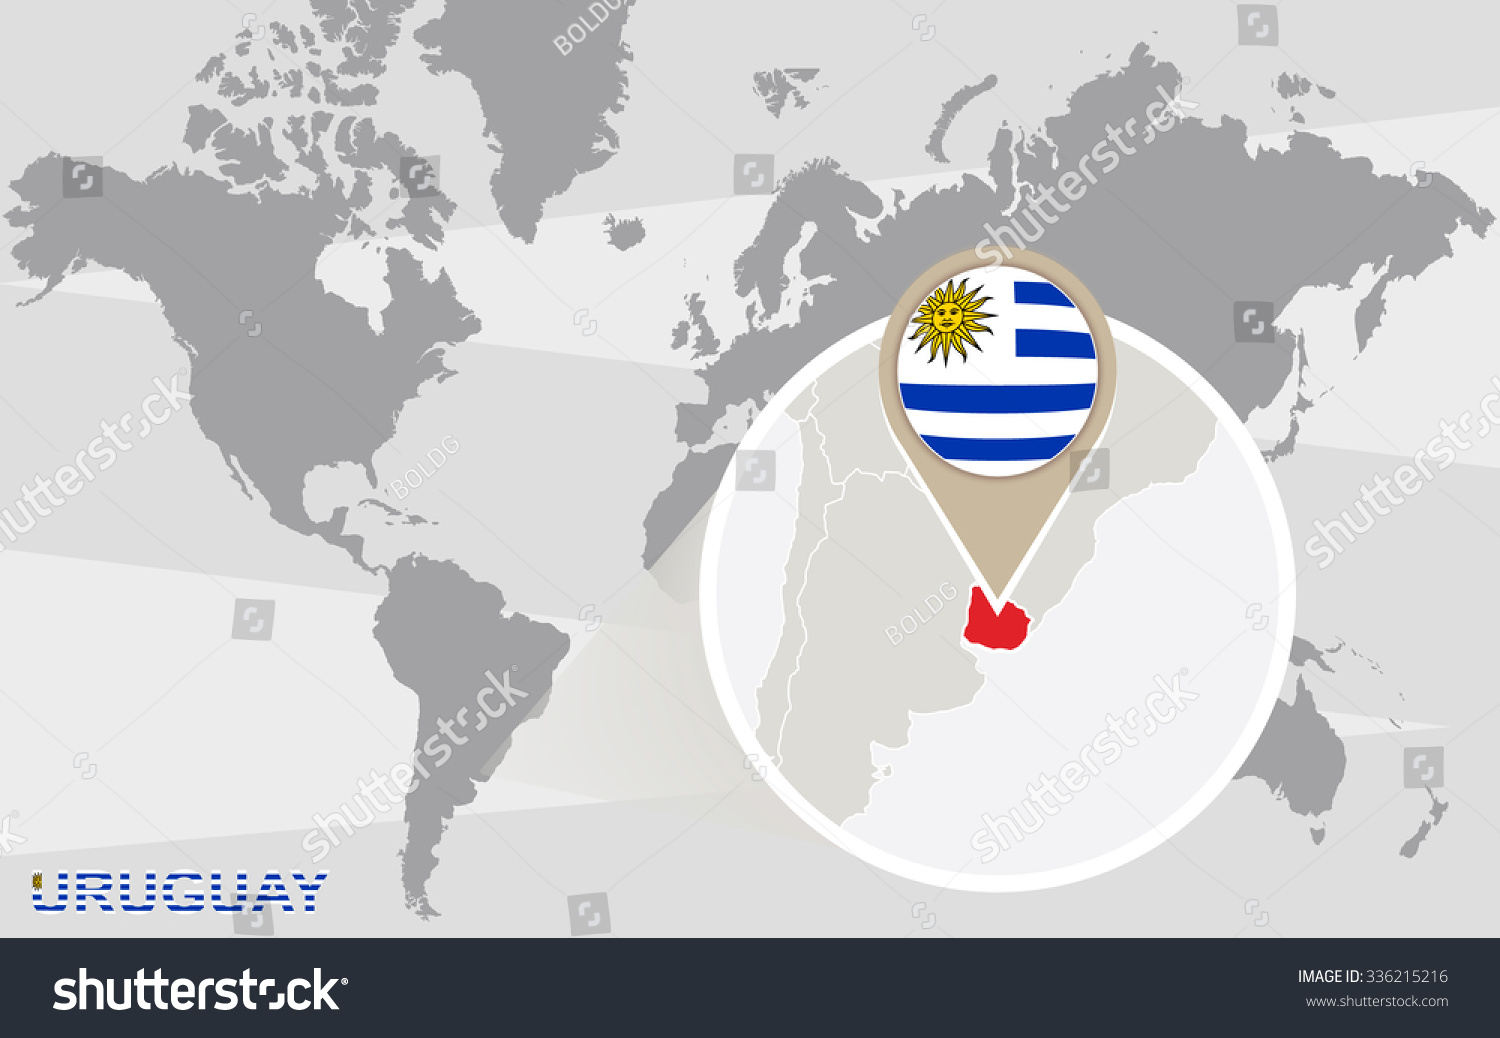 World map magnified uruguay uruguay flag stock illustration world map with magnified uruguay uruguay flag and map rasterized copy gumiabroncs Image collections